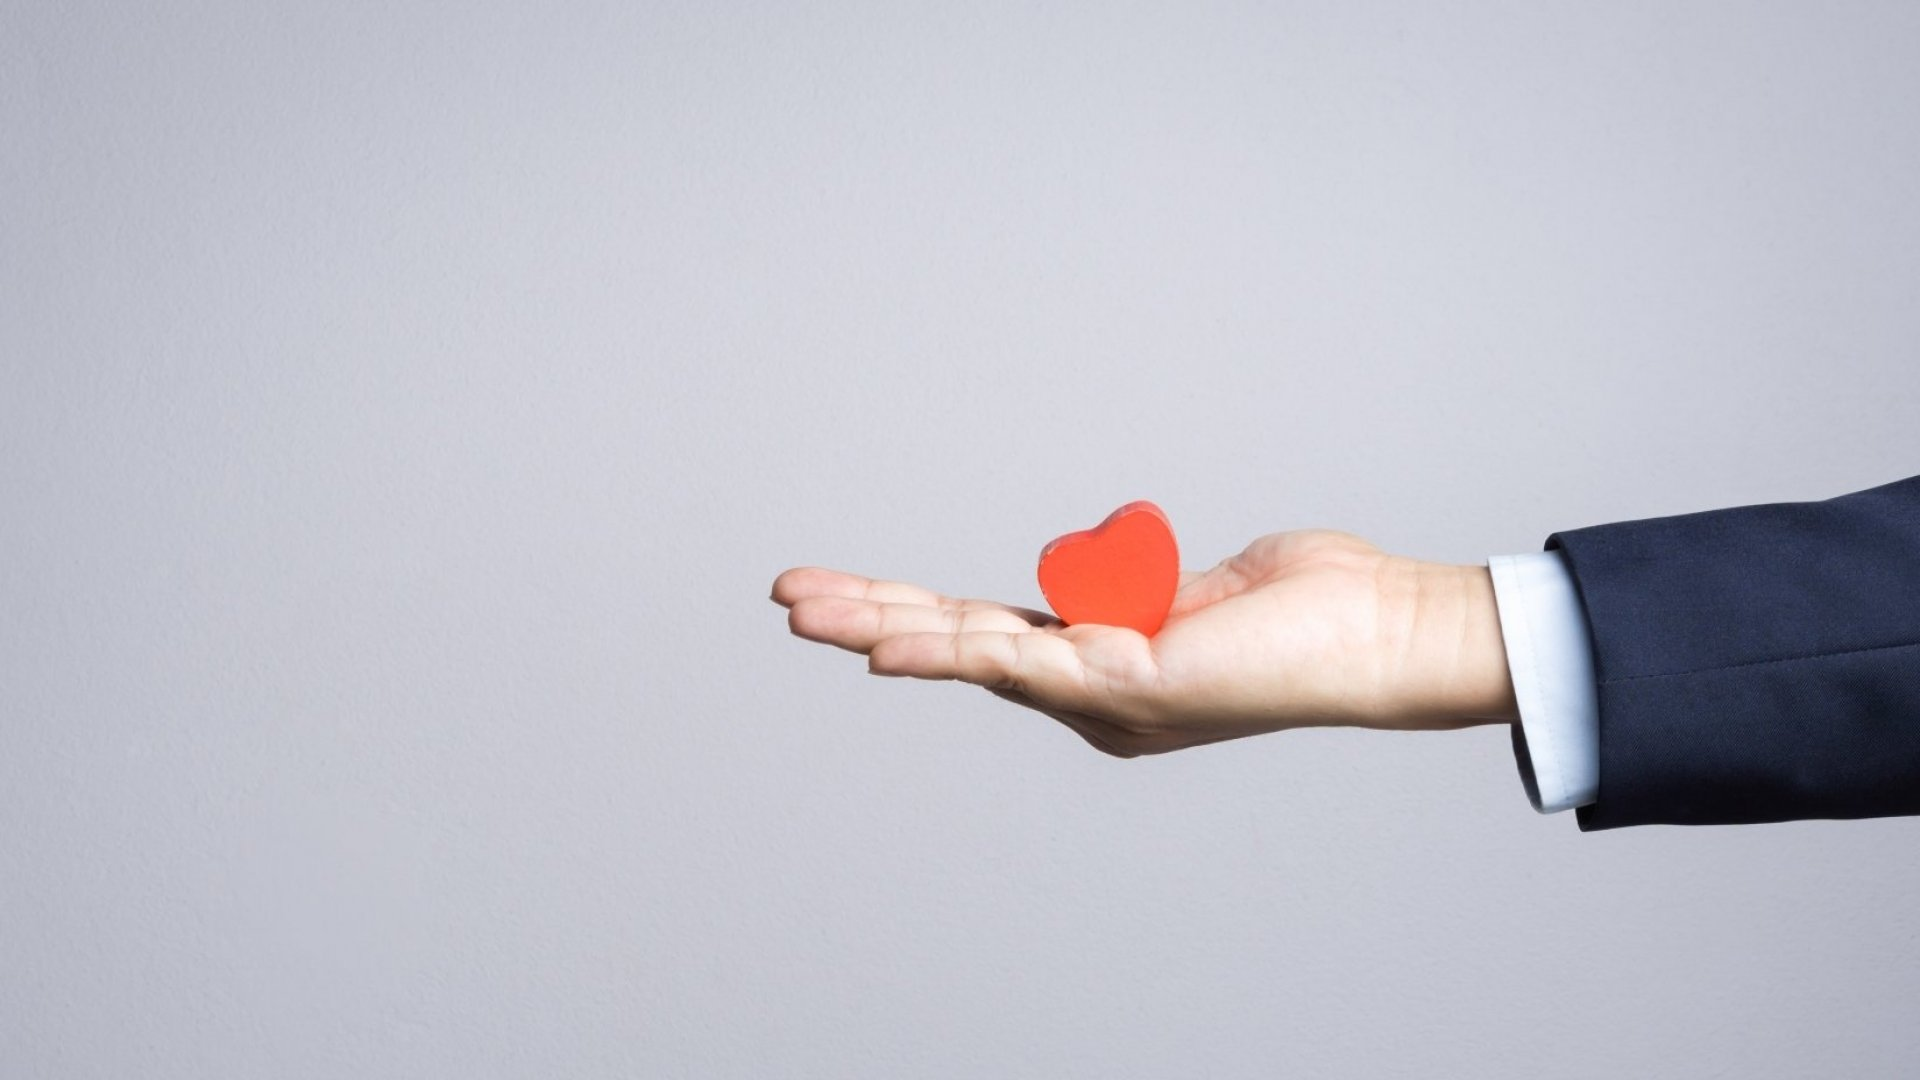 Want to Energize Your Employees and Earn Loyalty?  Put a Little Love in Your Business Model, According to This Study